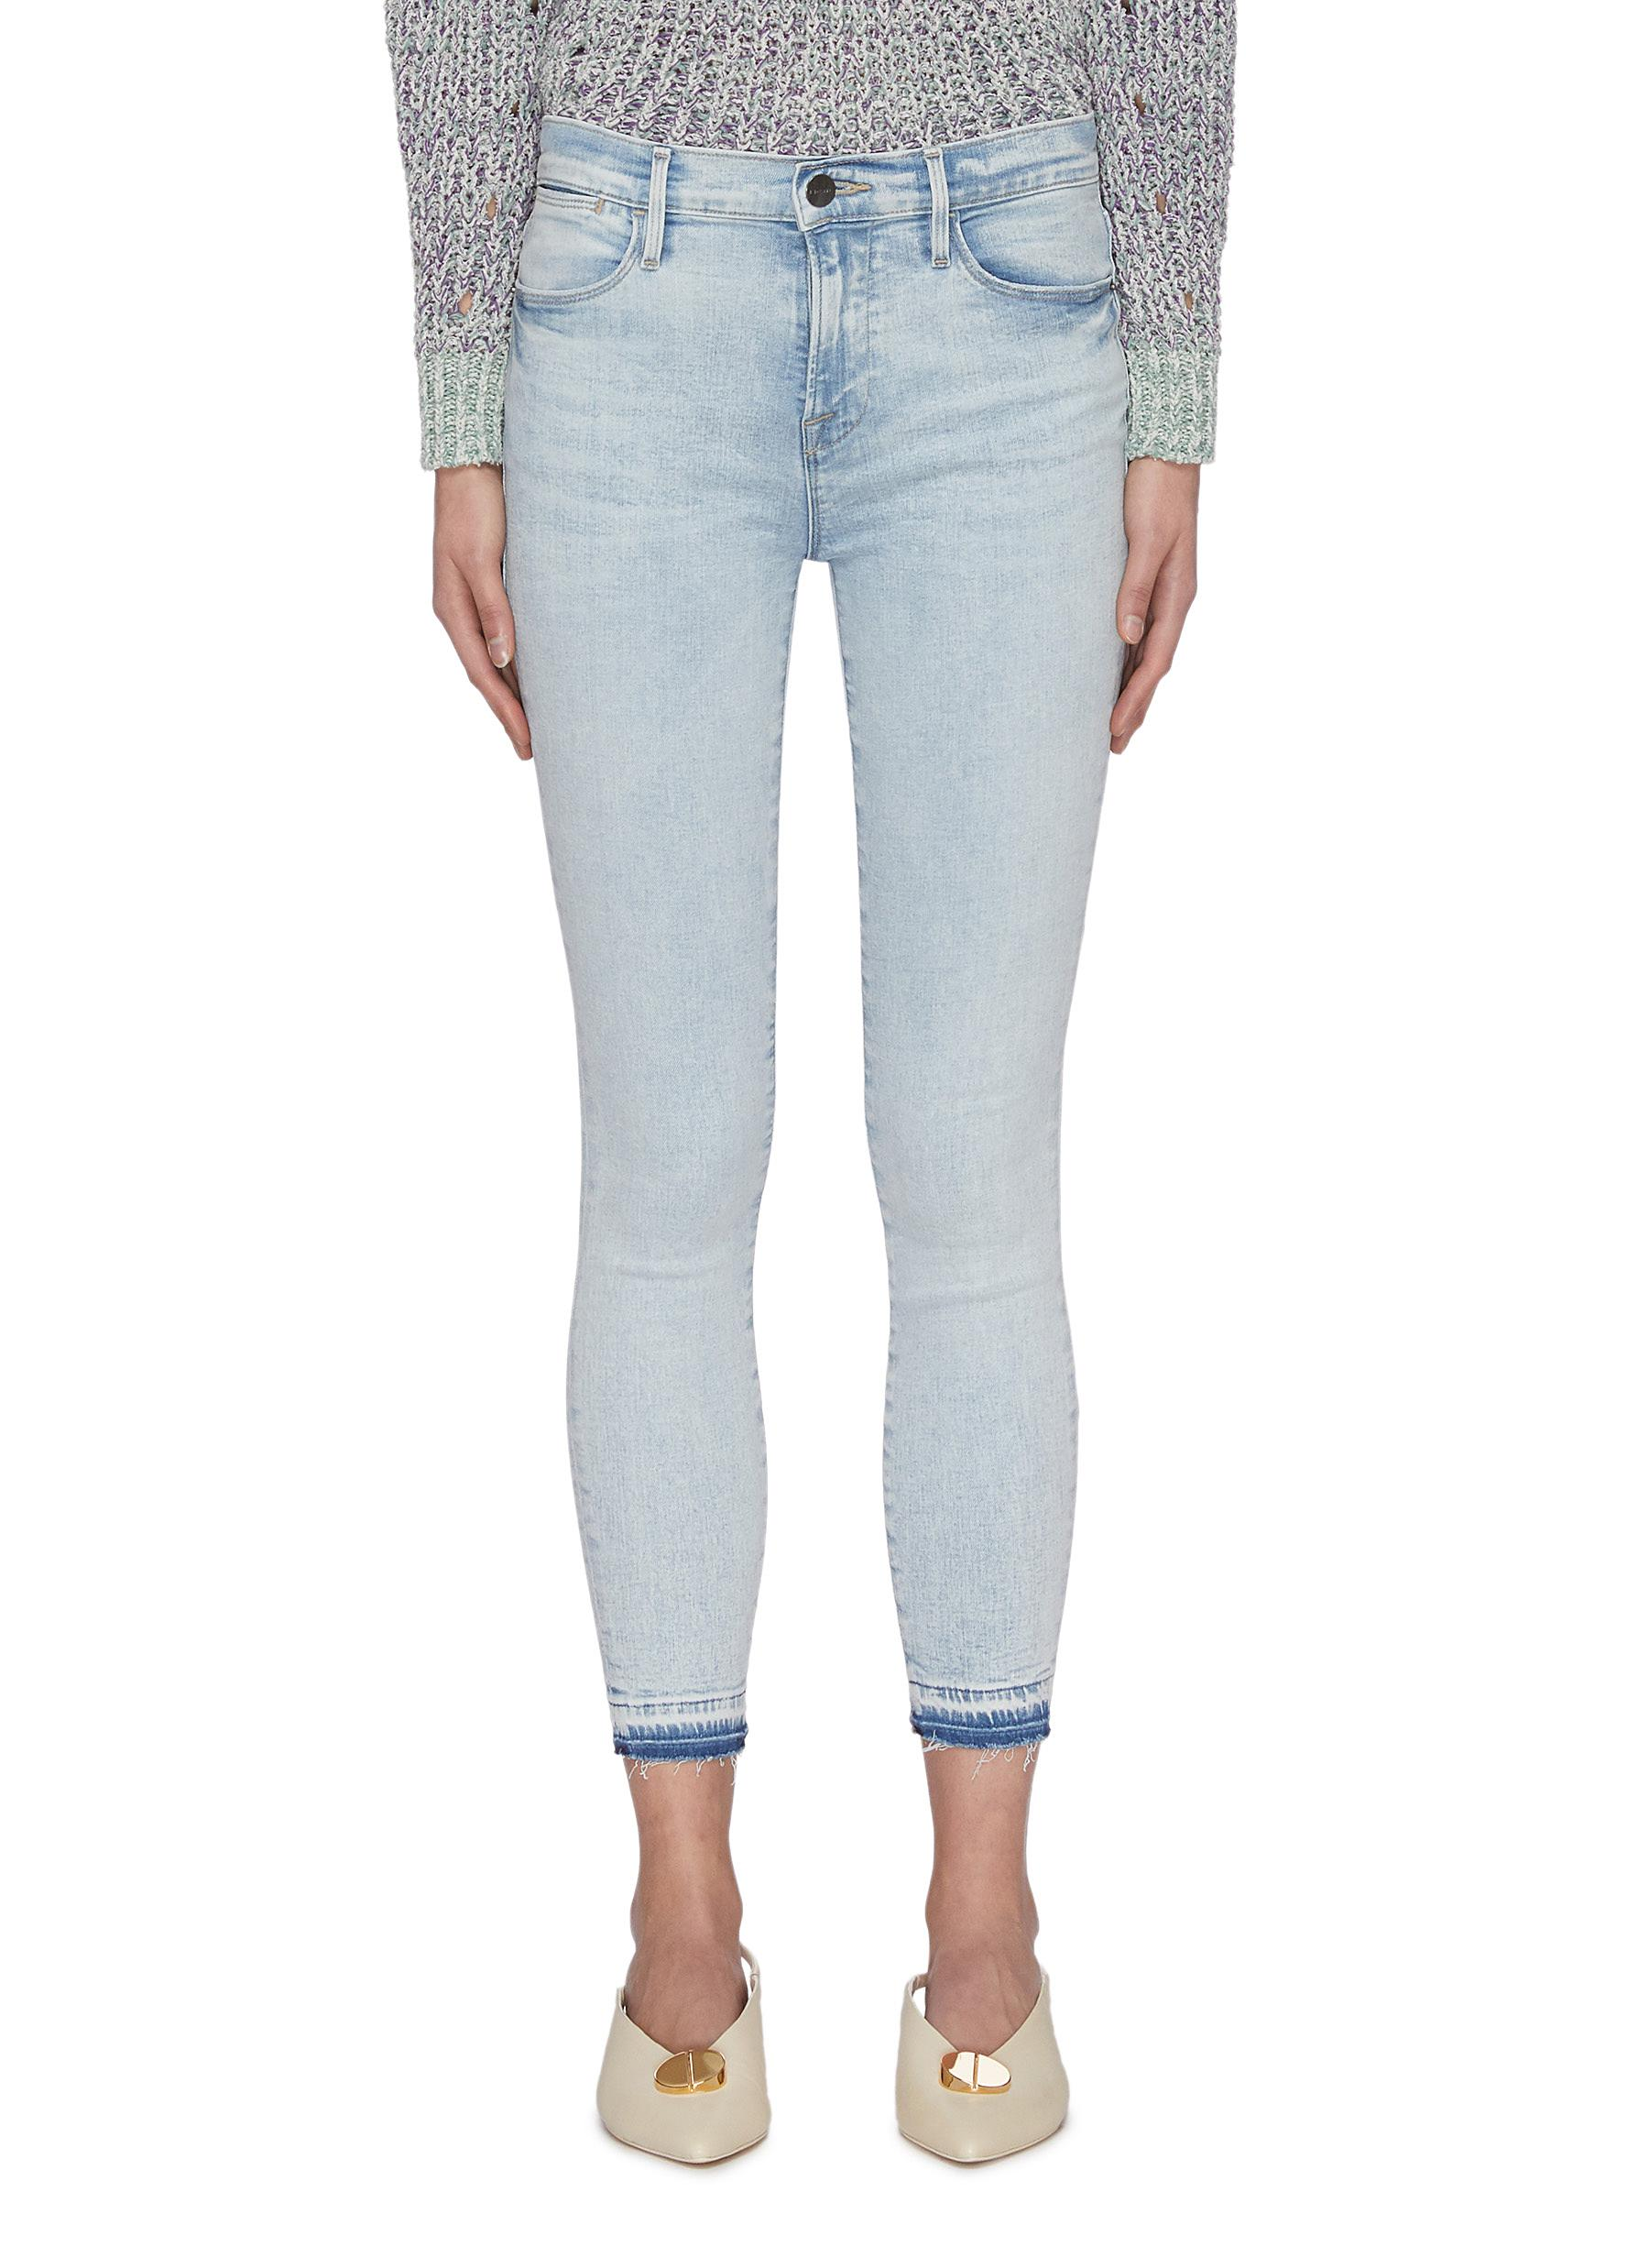 Buy Frame Denim Jeans 'Le High Skinny' released hem crop skinny jeans